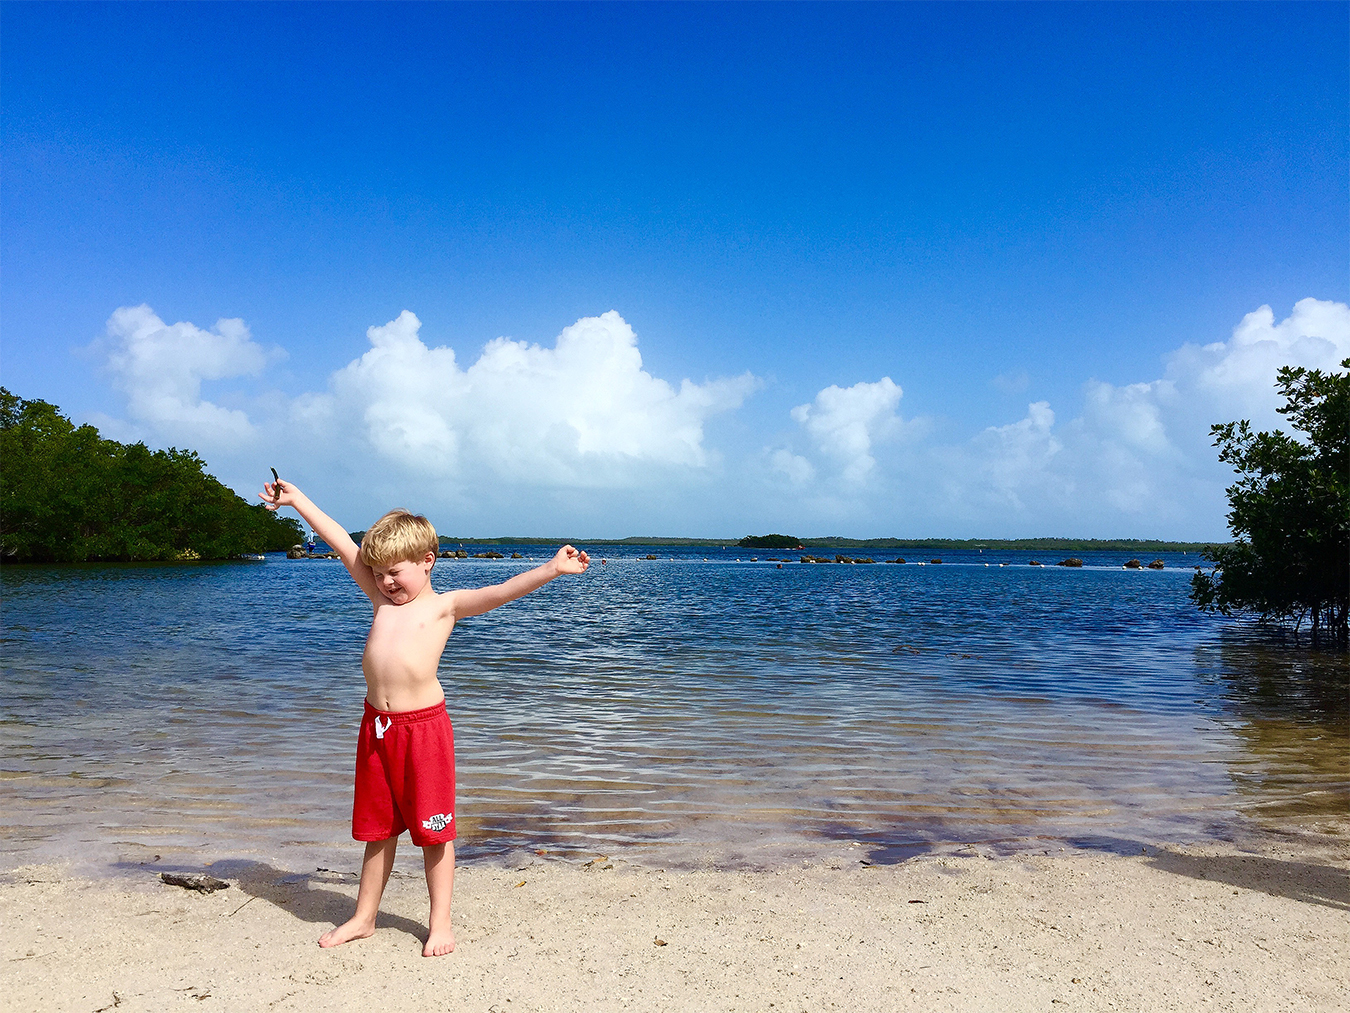 7_Mu_Qiao_travel_Photography_Miami_Key_West_Florida_boy_swimming